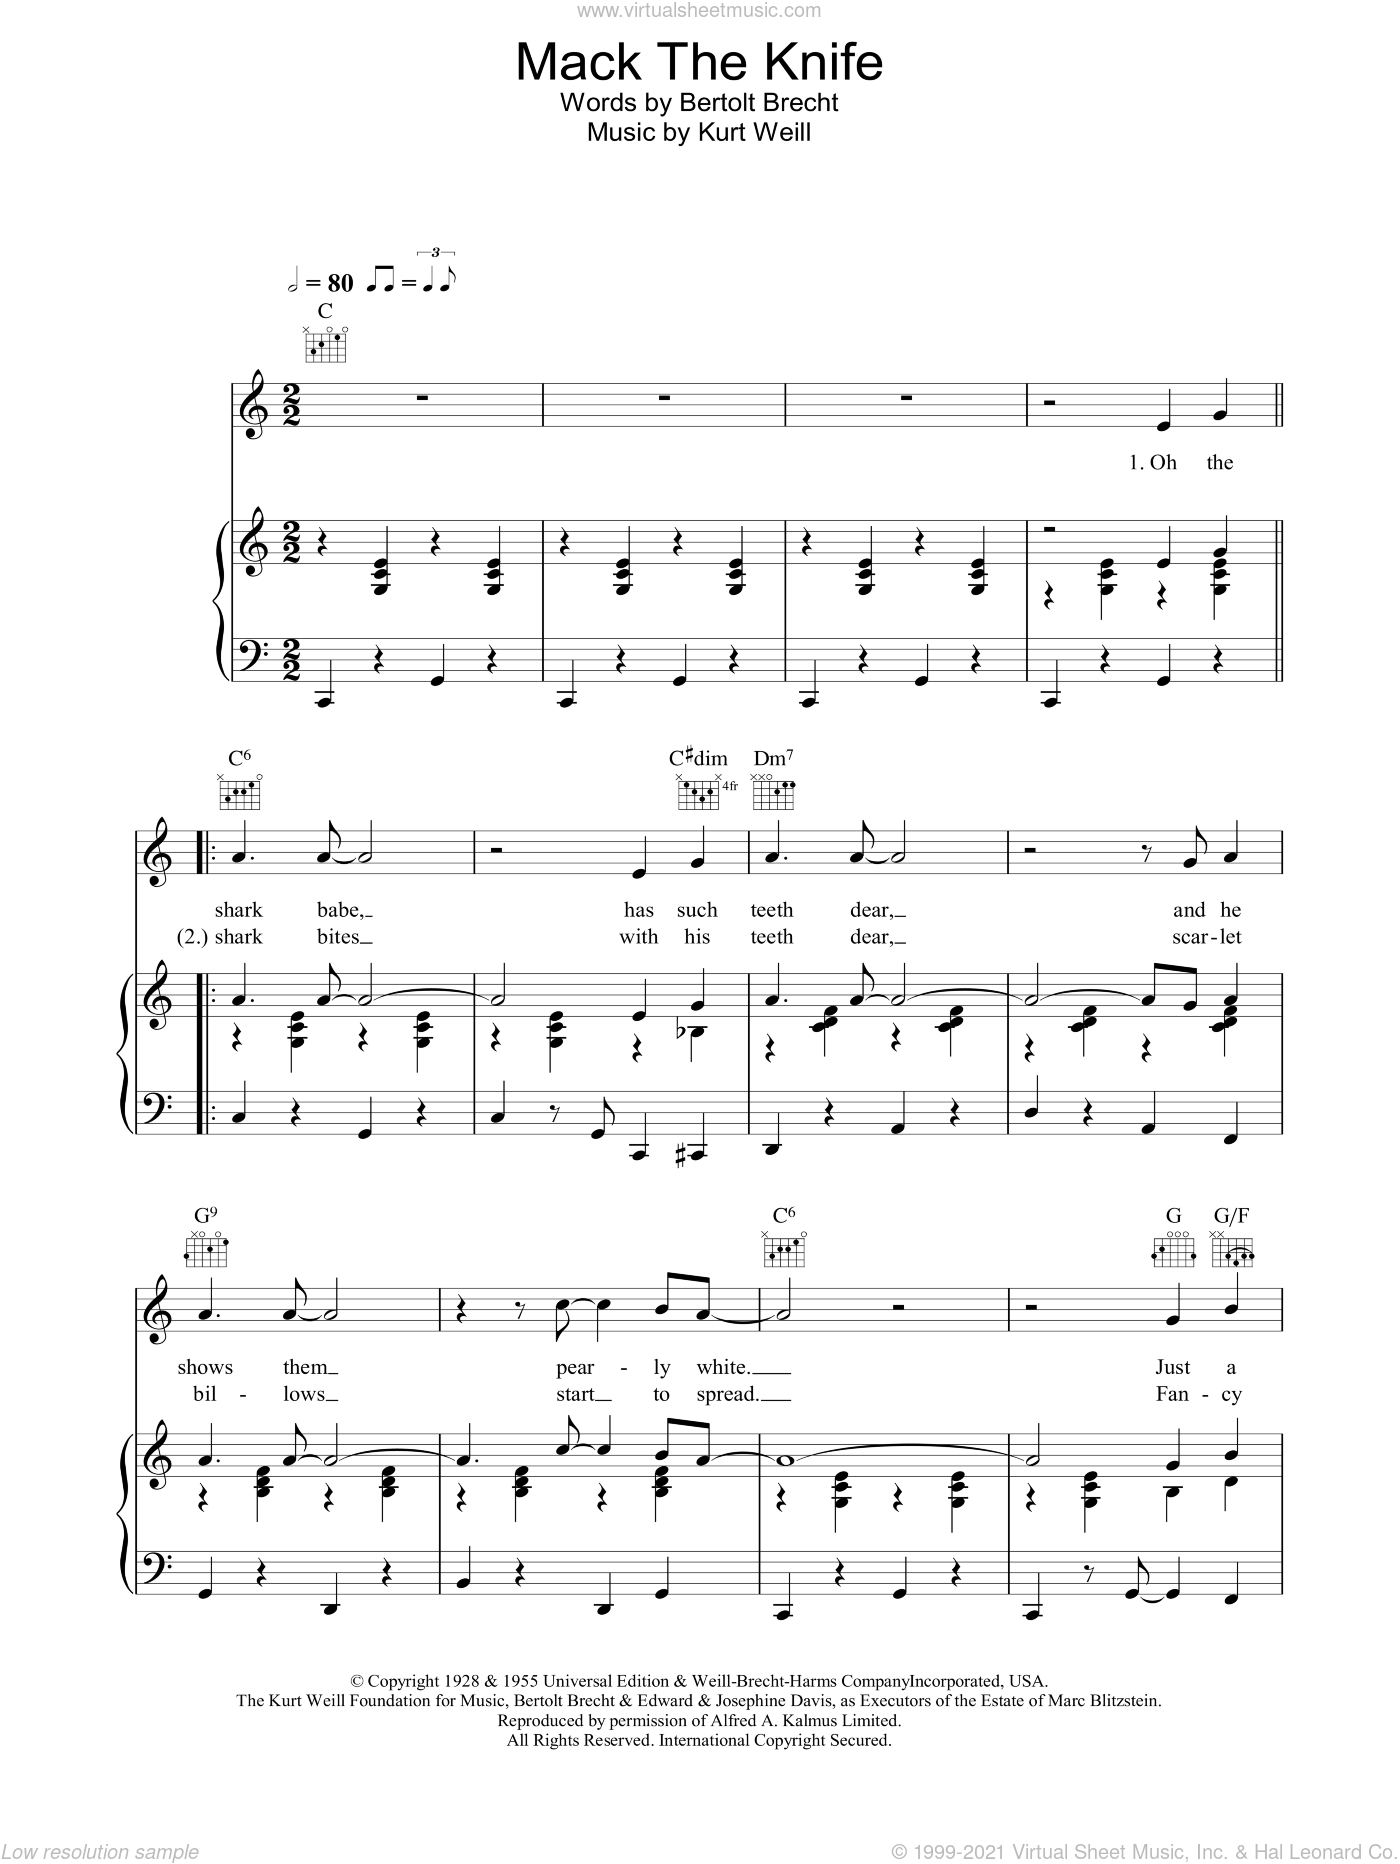 Mack The Knife sheet music for voice, piano or guitar by Kurt Weill